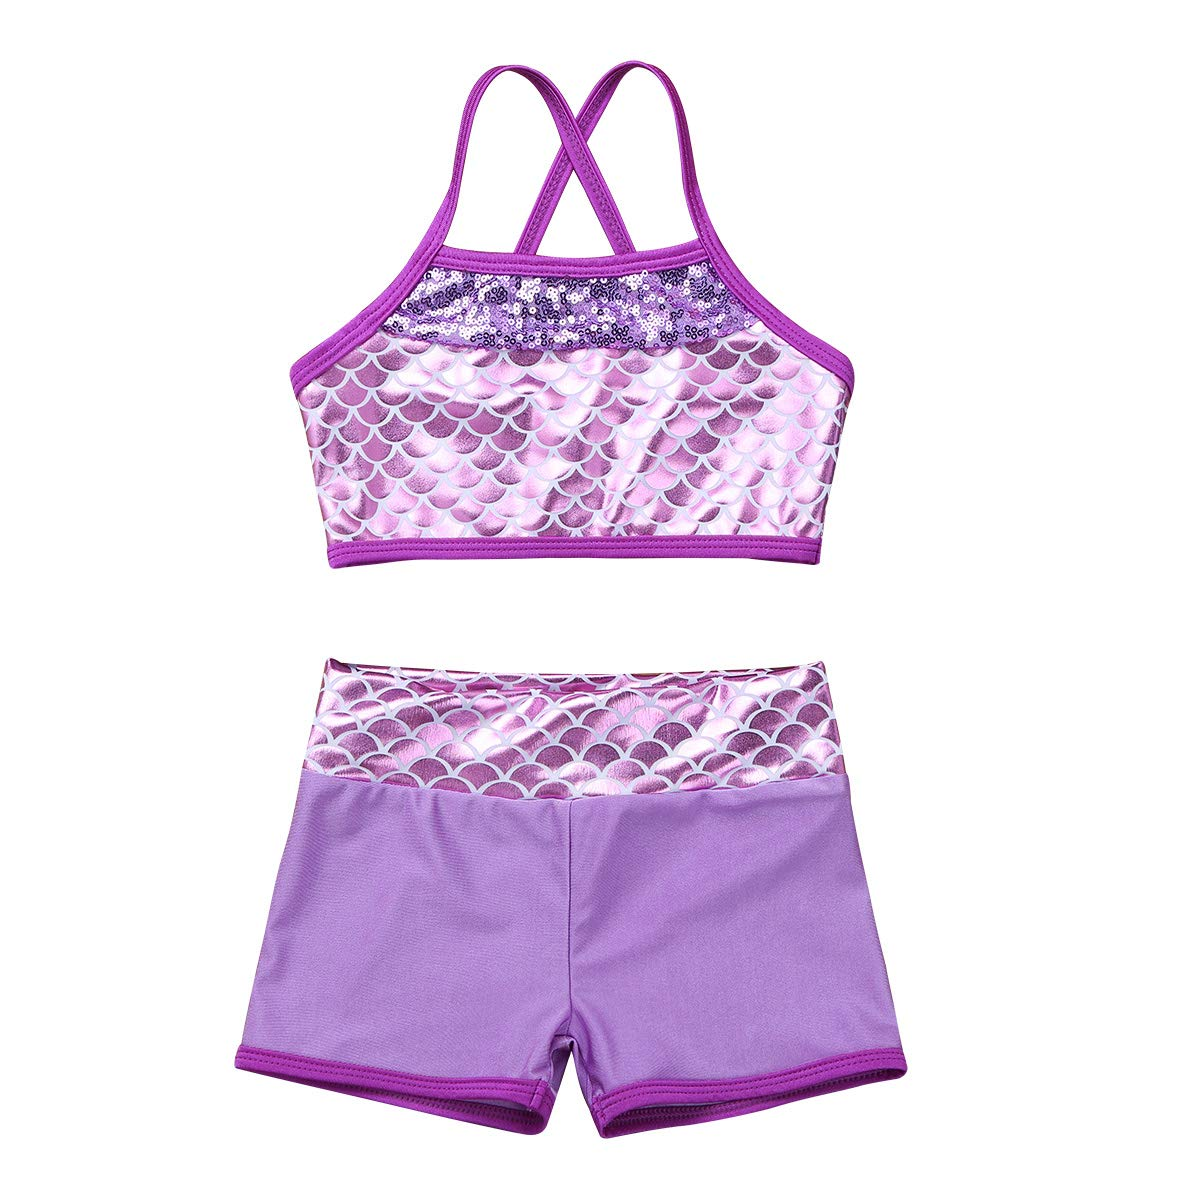 inlzdz 2PCS Kids Girls Sequined Sports Dance Bra Top with Shorts Ballet Dance wear Stage Performance Costumes